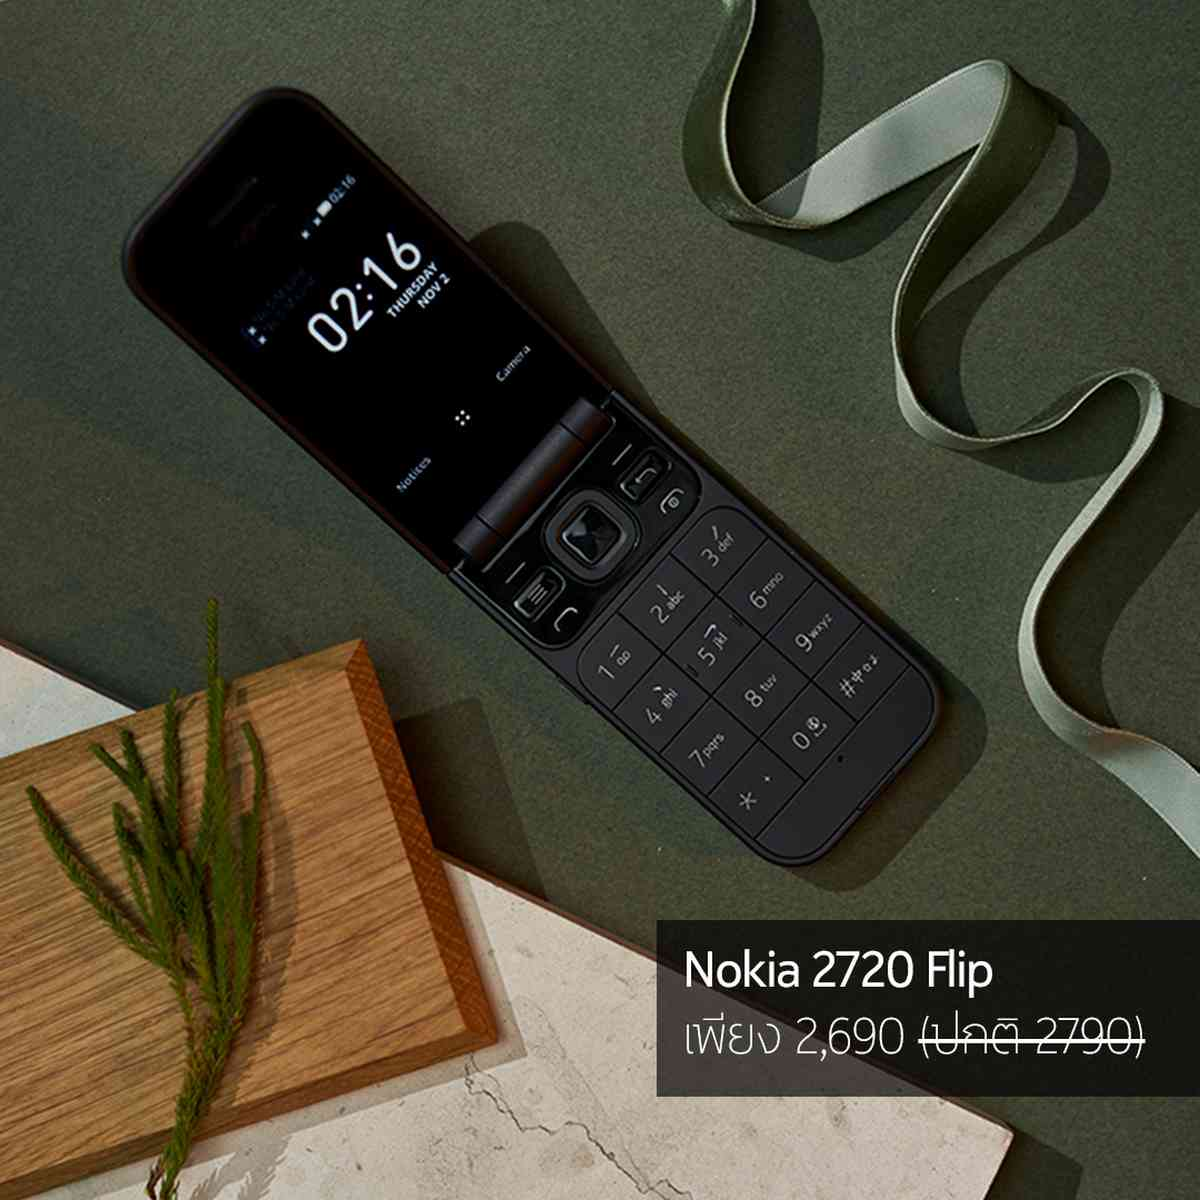 Nokia offer special promotion for shopping online.